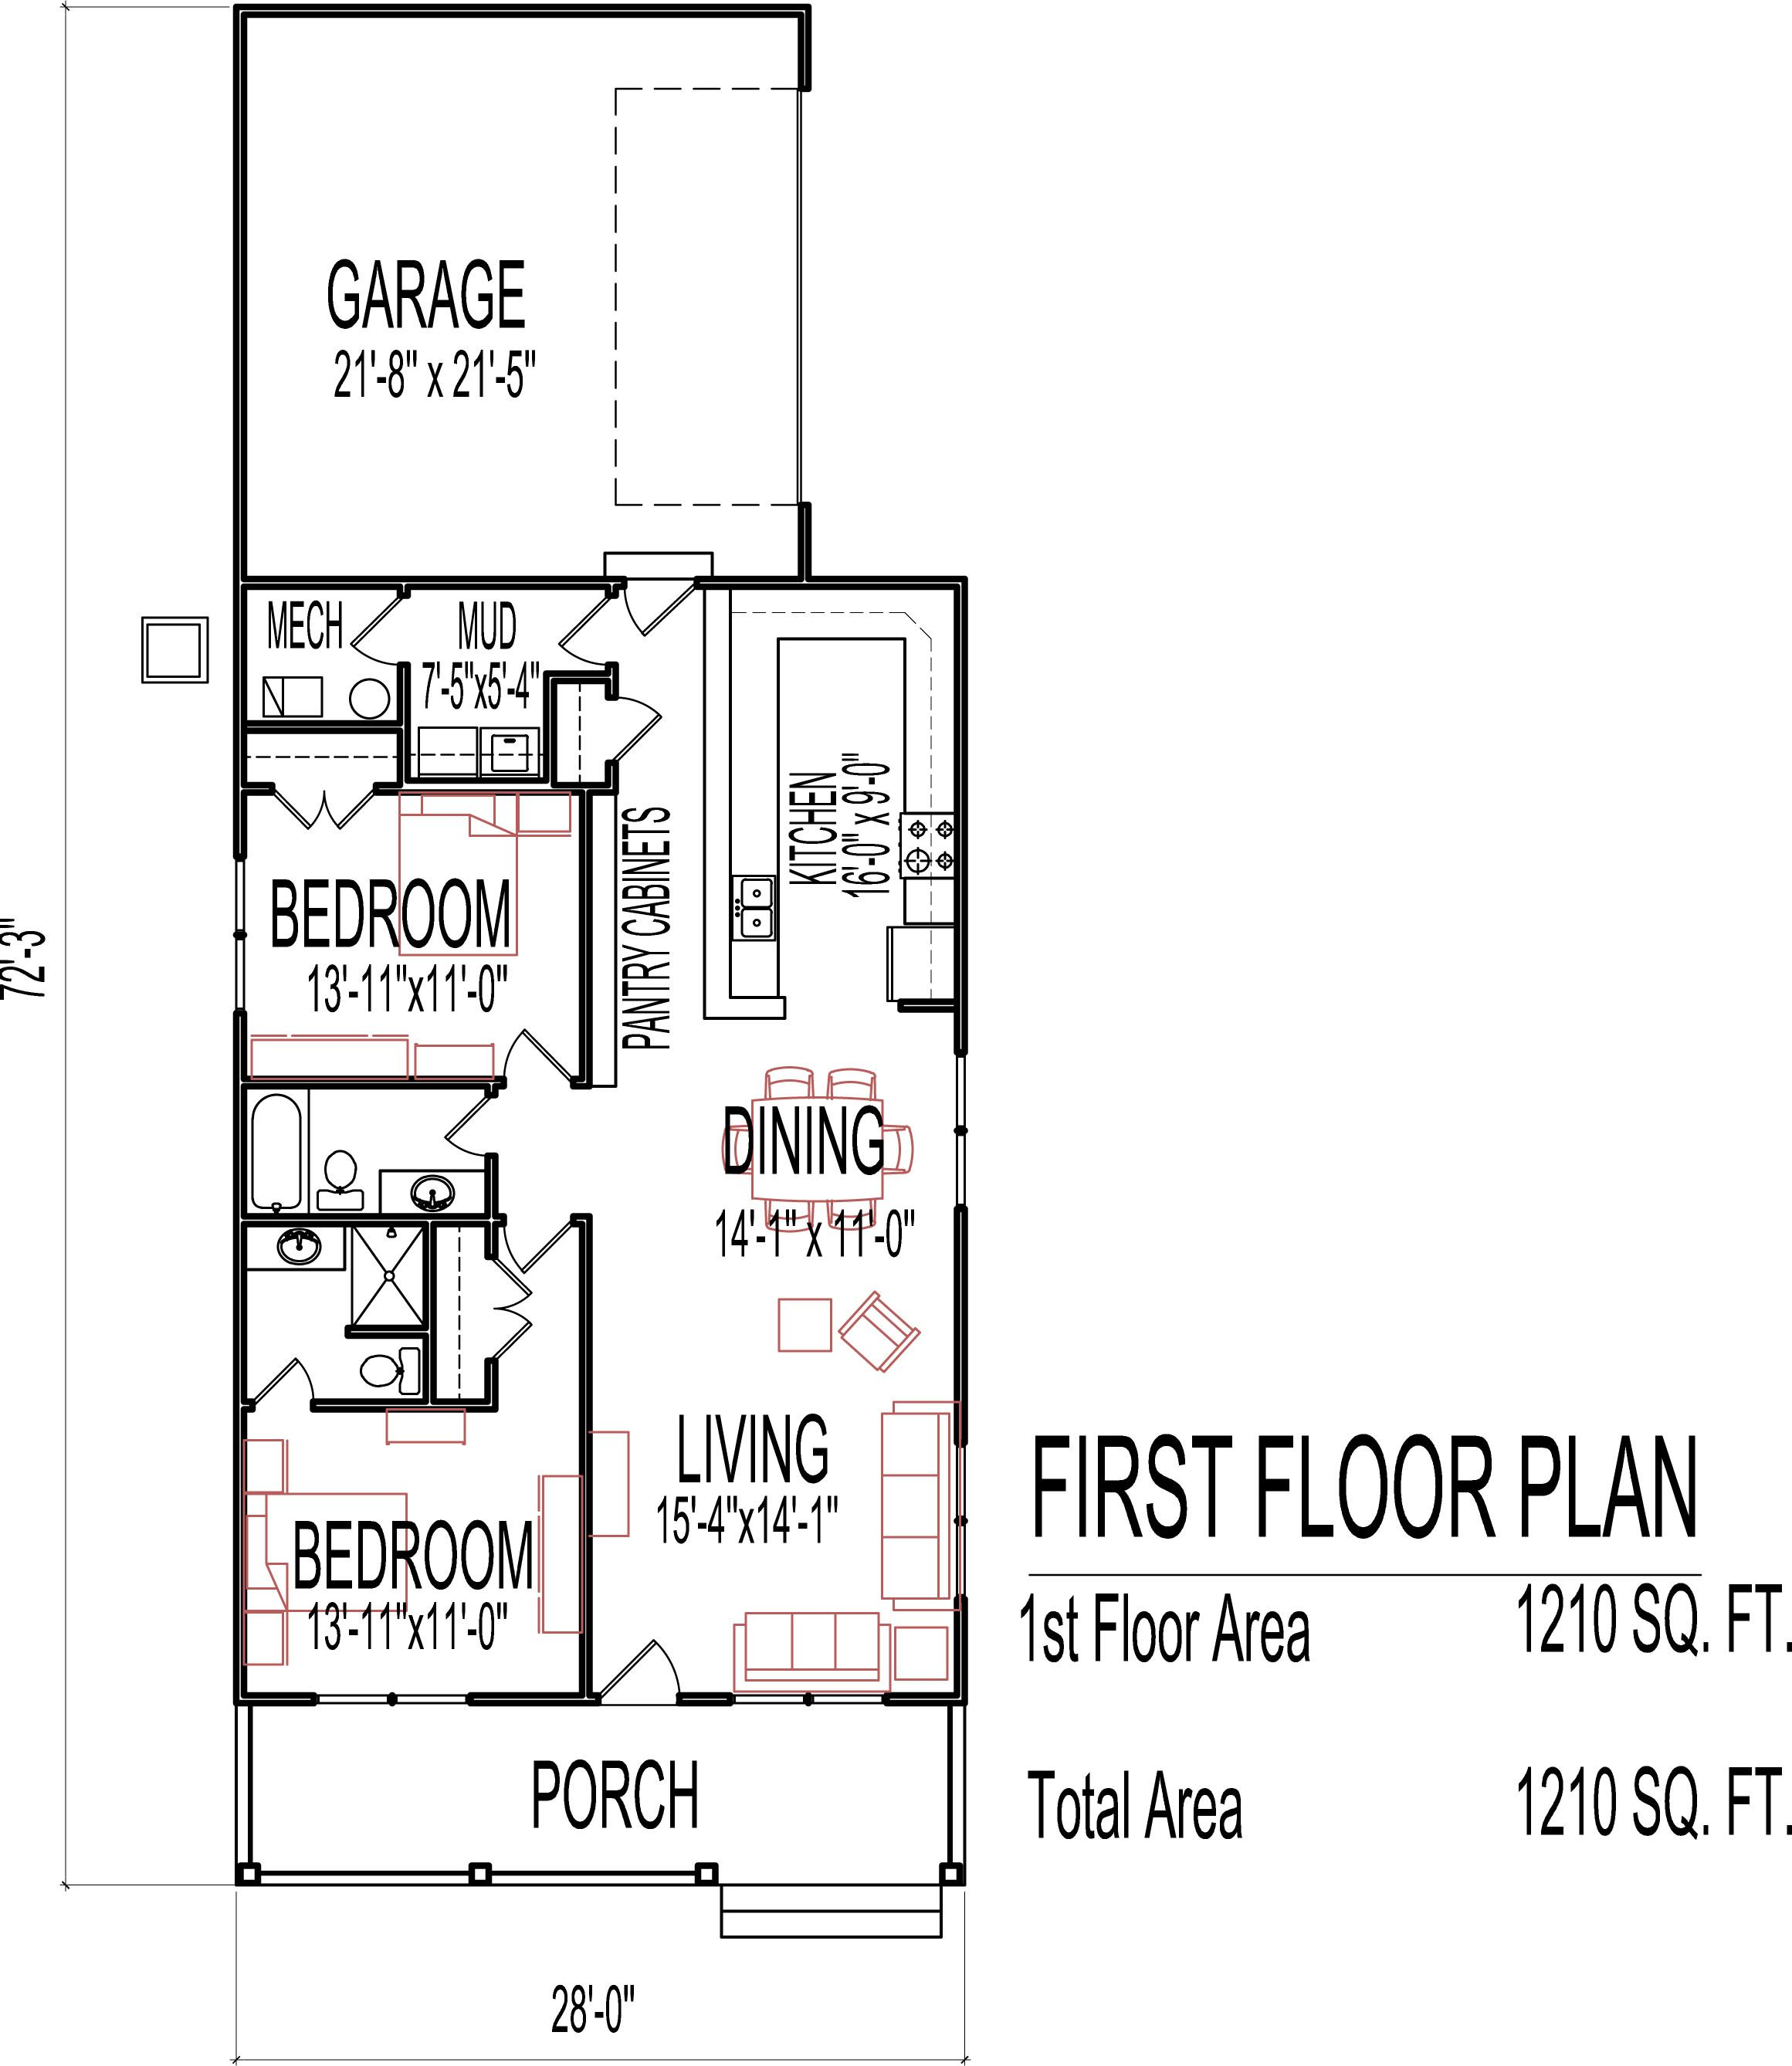 Small low cost economical 2 bedroom 2 bath 1200 sq ft for 2 bedroom houseplans